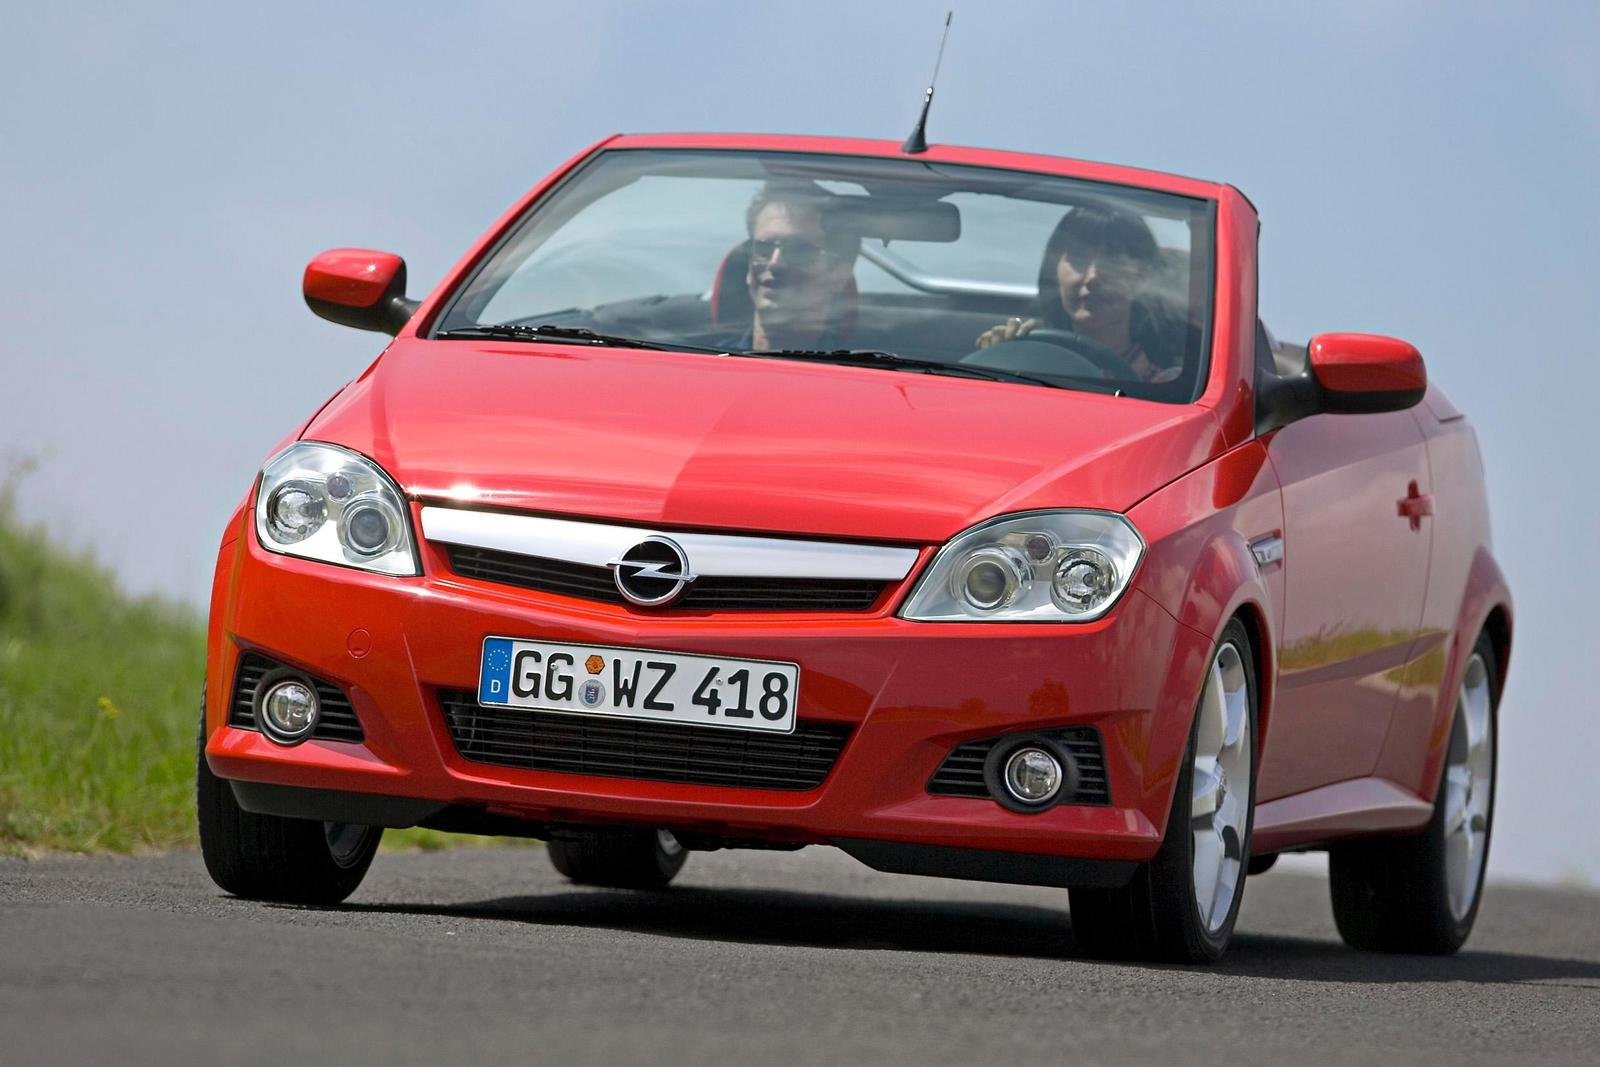 2007 opel tigra twintop picture 154987 car review. Black Bedroom Furniture Sets. Home Design Ideas